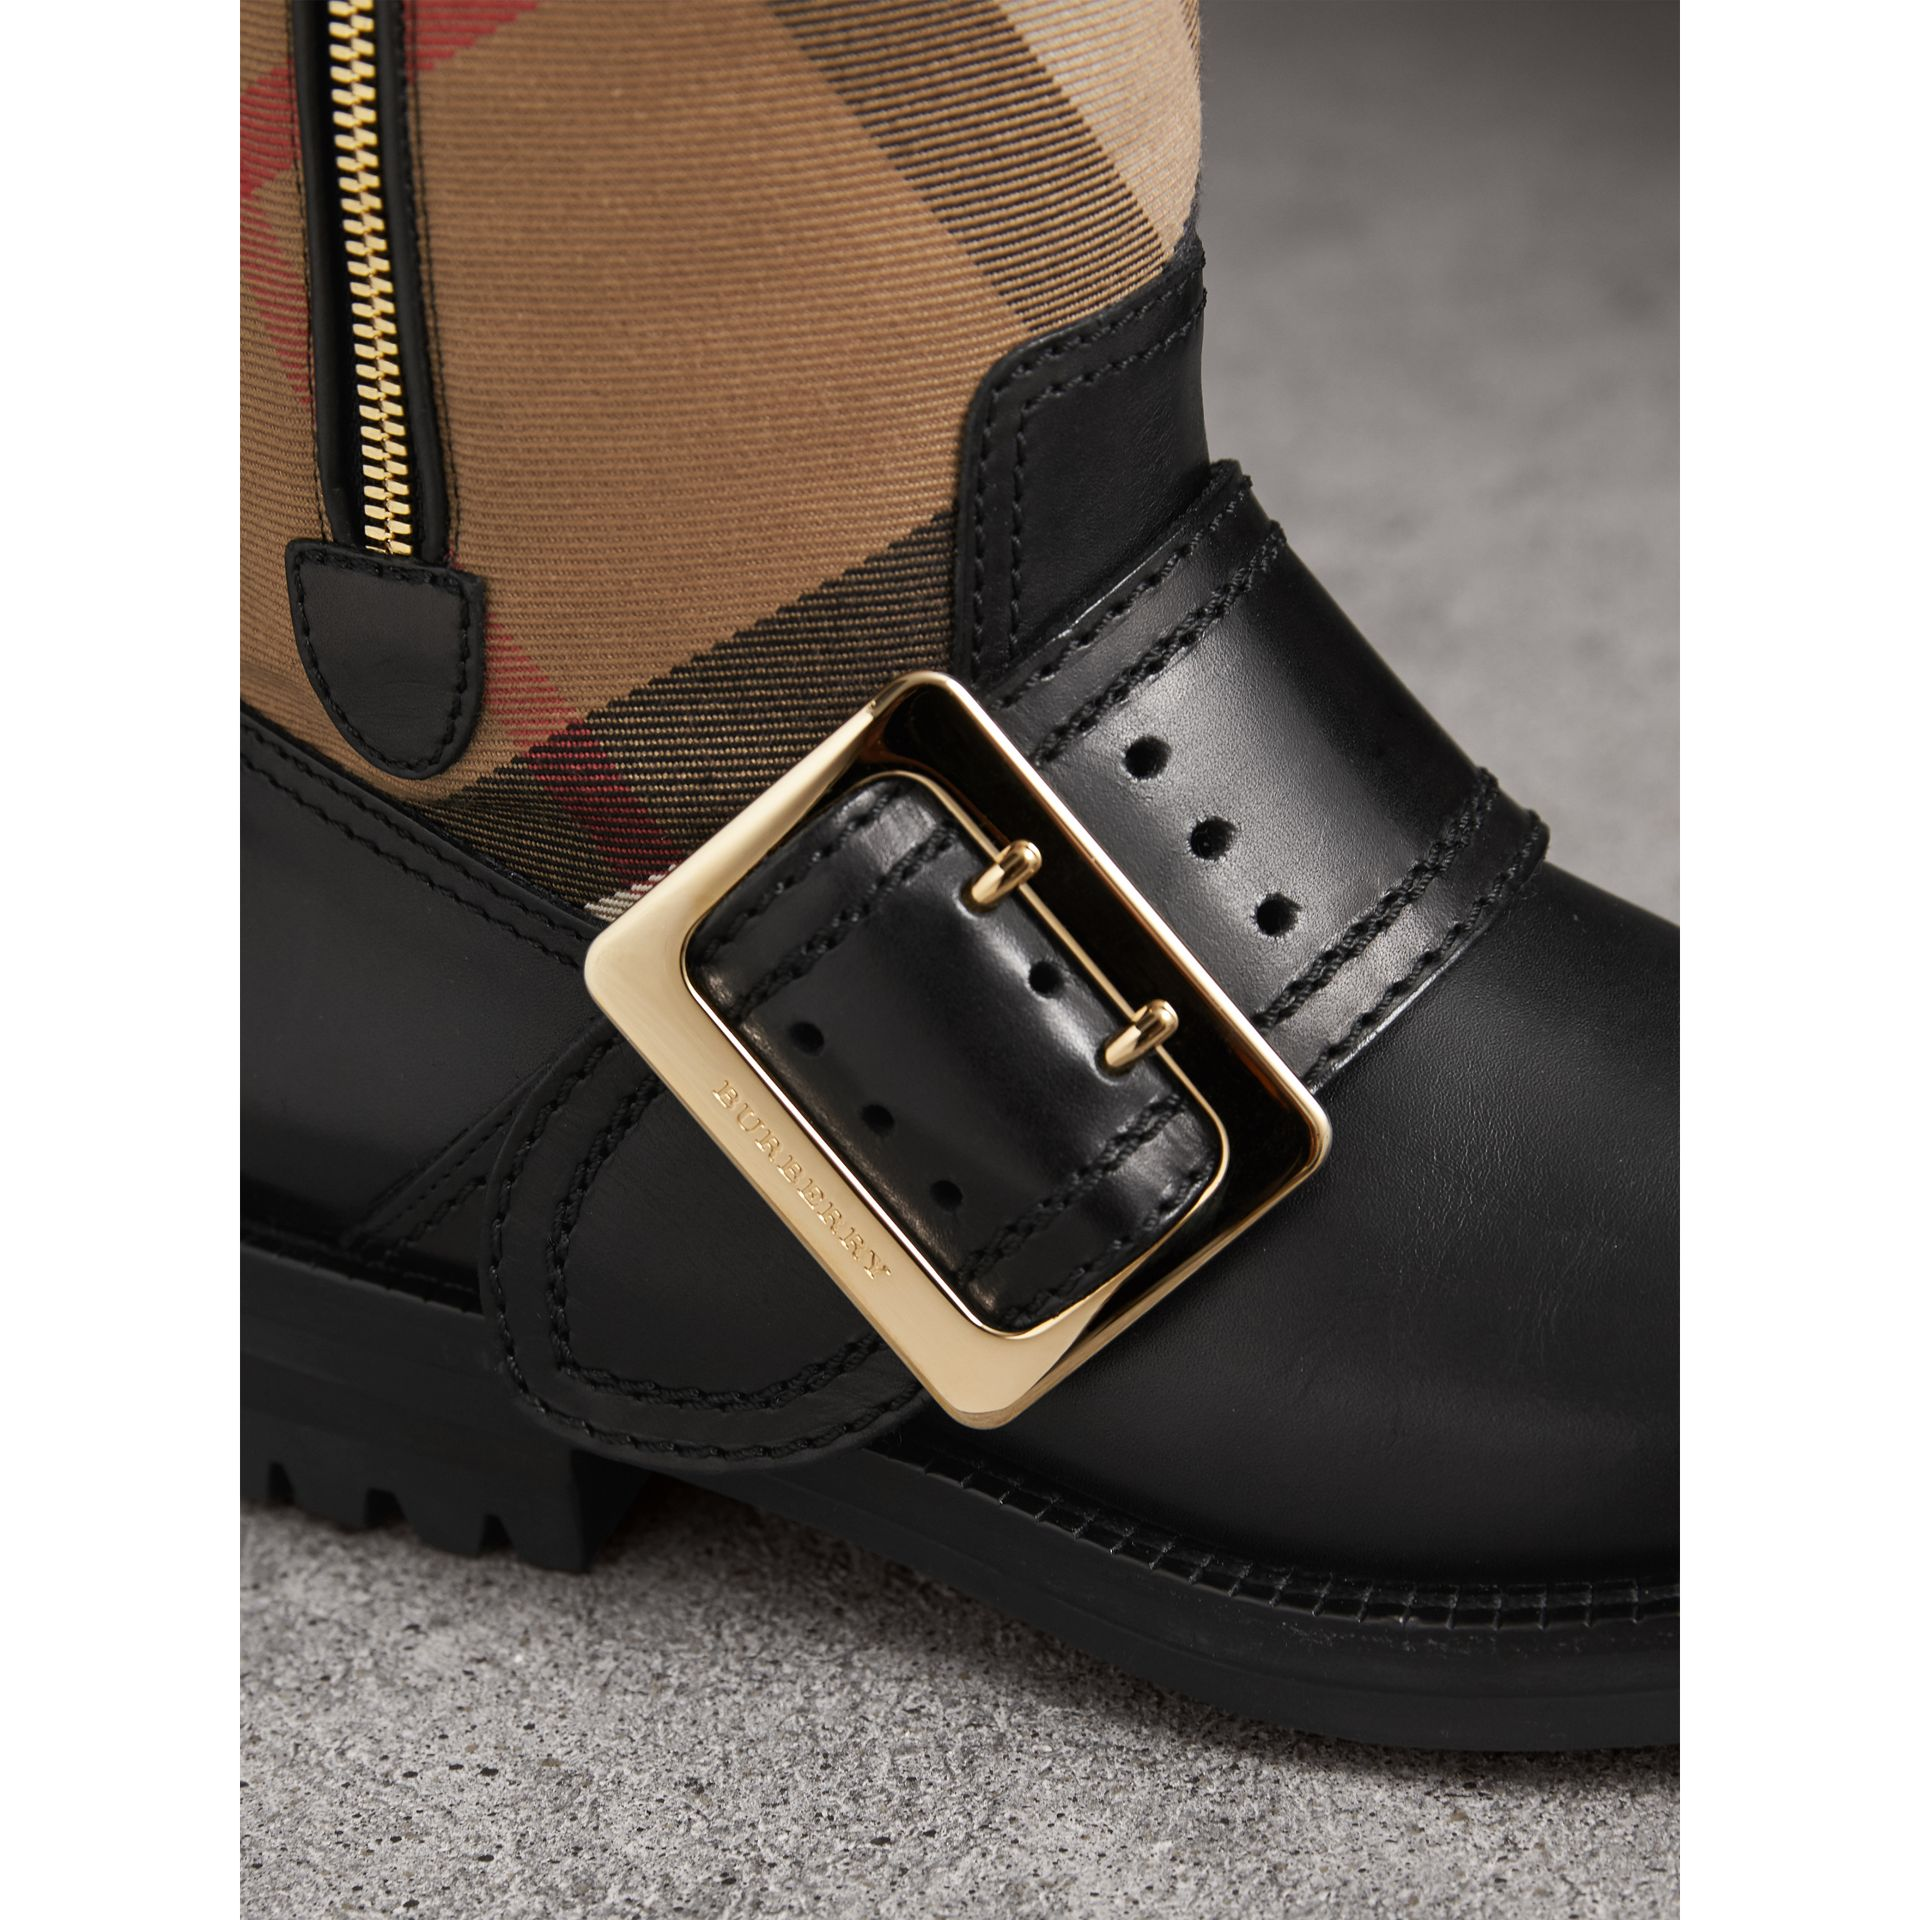 House Check Buckle Detail Leather Boots in Classic - Women | Burberry United States - gallery image 2